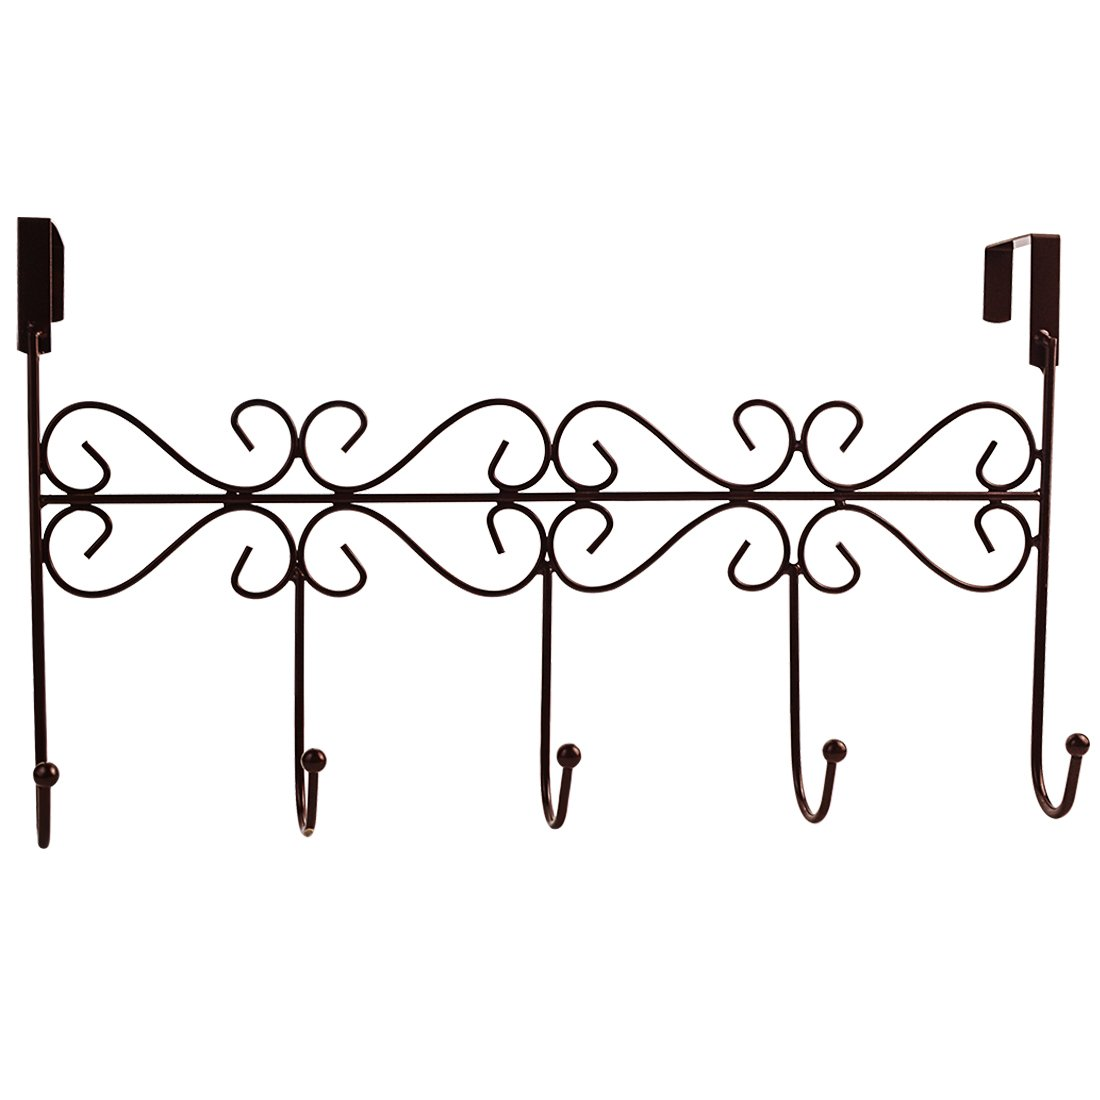 obmwang Over The Door 5 Hook Rack Decorative Organizer Hooks for Clothes Coat Hat Belt Towels Stylish Over Door Hanger for Home or Office Use L x W x H 15 x 2 x 9 Inch